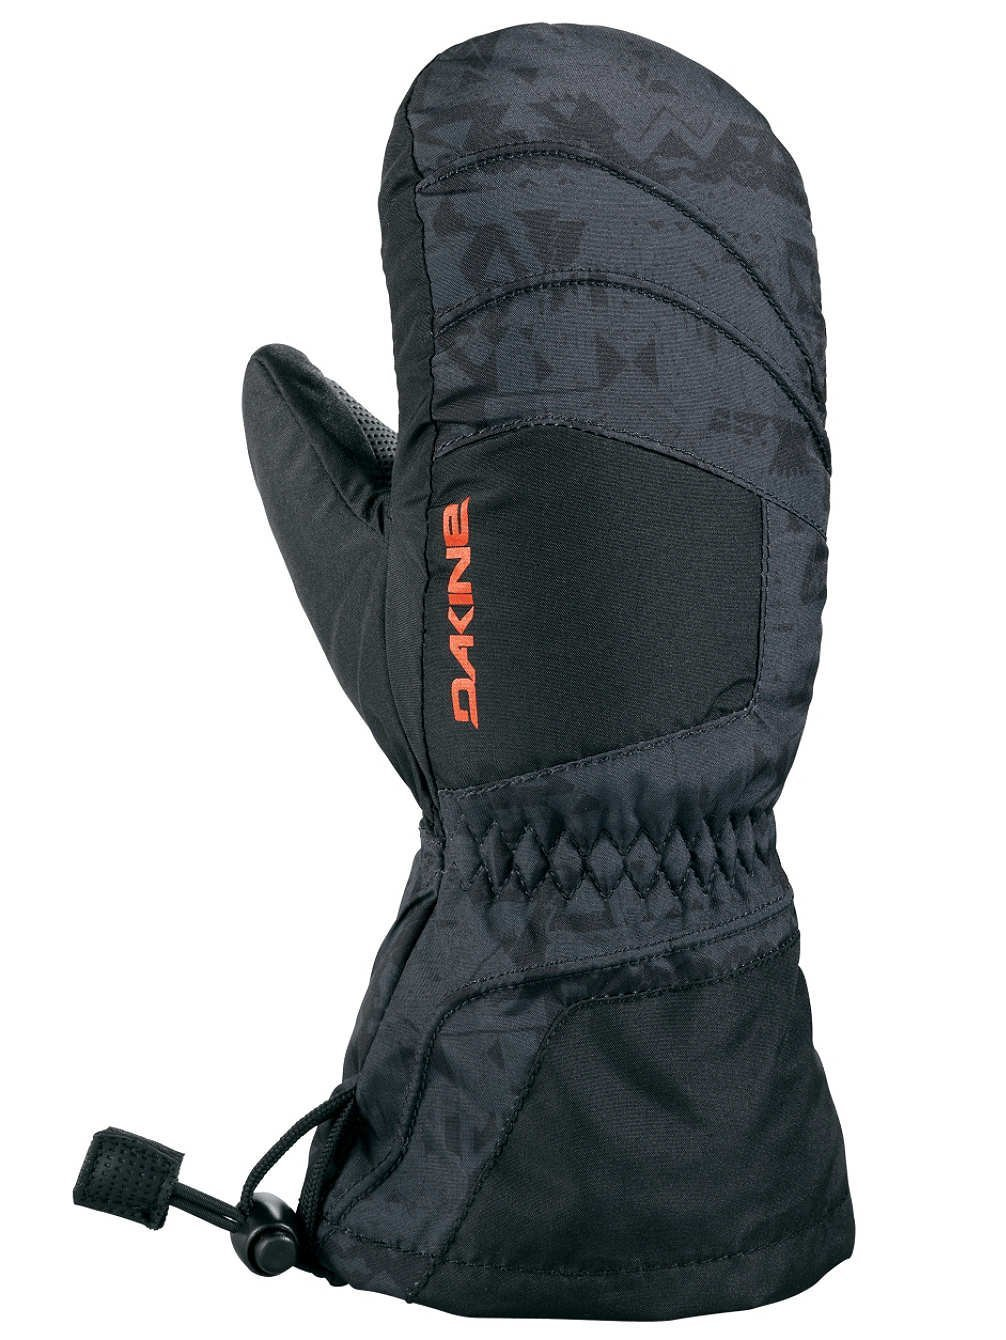 Dakine Tracker Mitt - Kid's Large, Pinyon